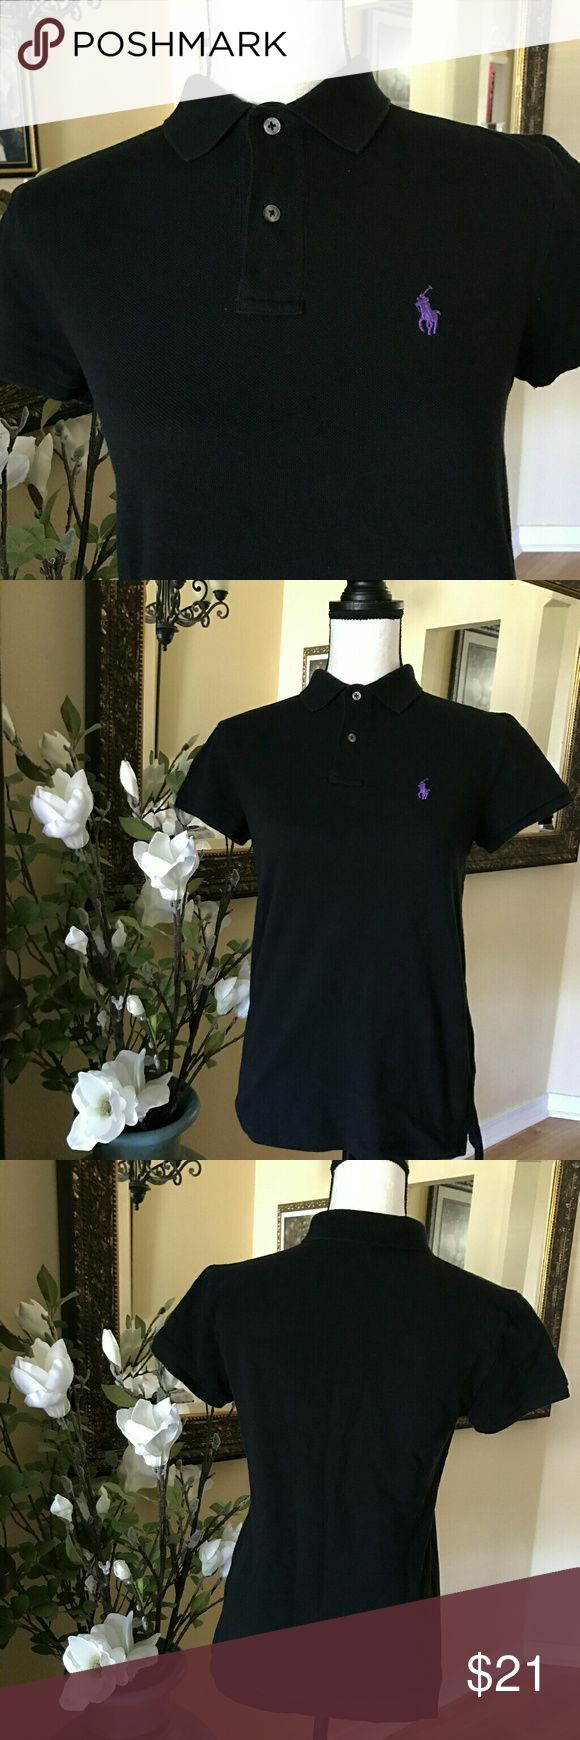 Ralph Lauren Classic Fit Polo Shirt Sz S This is a classic fit polo shirt with embroidered purple pony. It has a straight silhouette. Ribbed Polo collar. Two-button placket.Short sleeves with ribbed armbands. Signature embroidered purple pony accents the left chest. Material 100% cotton. Machine washable. Imported. Ralph Lauren Tops